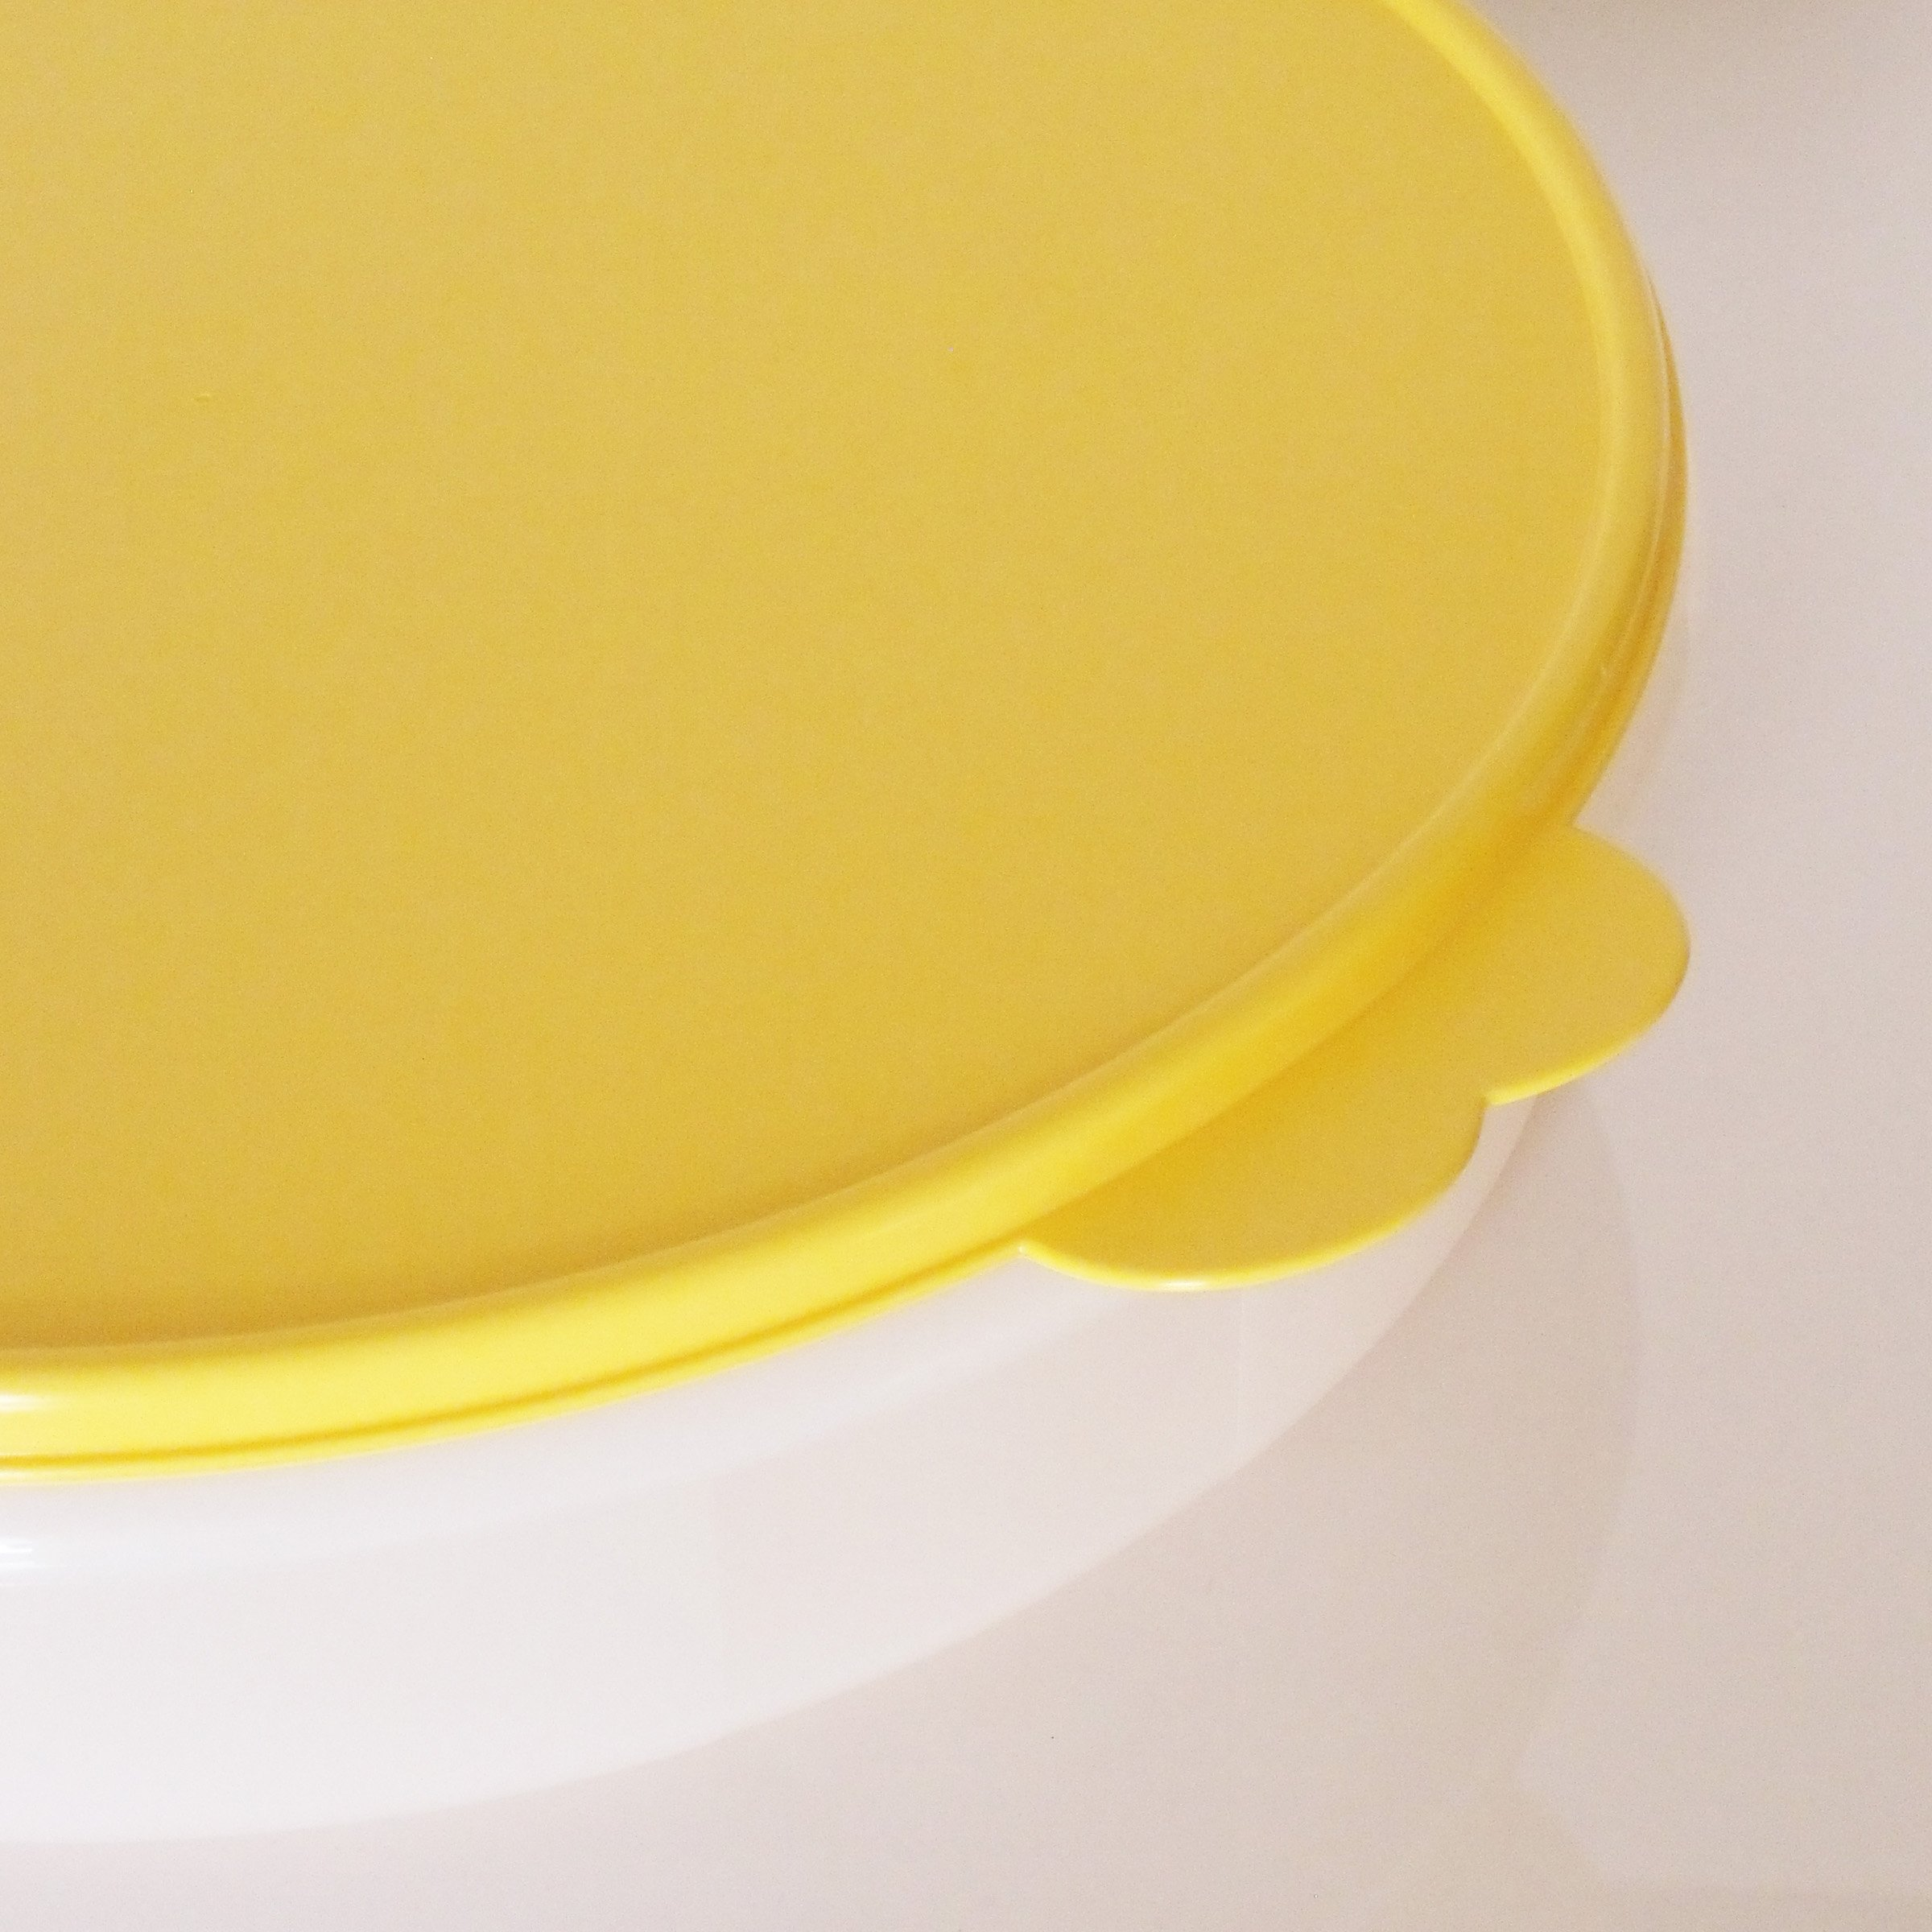 Tupperware 12'' Round Pie Keeper. White with Yellow Seal by Tupperware (Image #1)